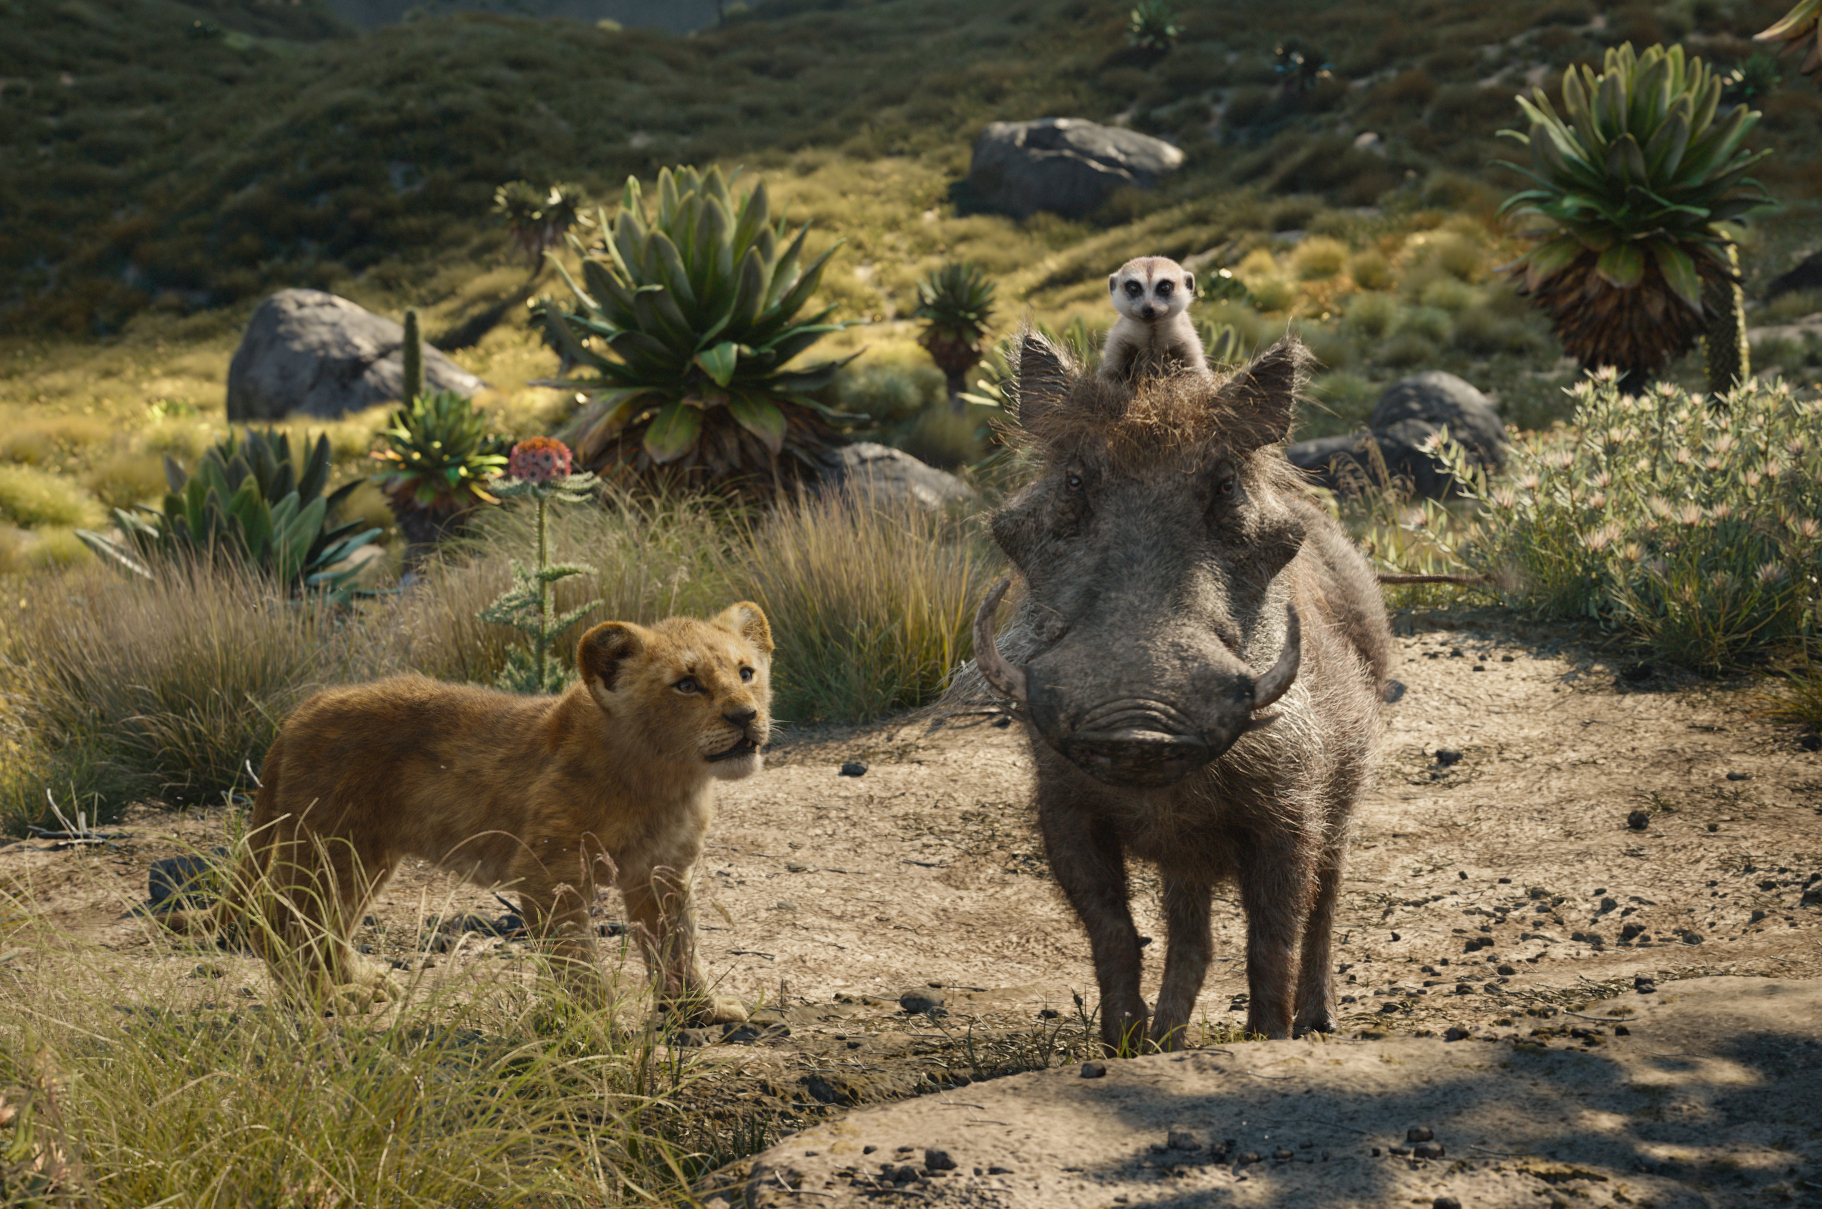 The Lion King rules and Endgame scores all-time record